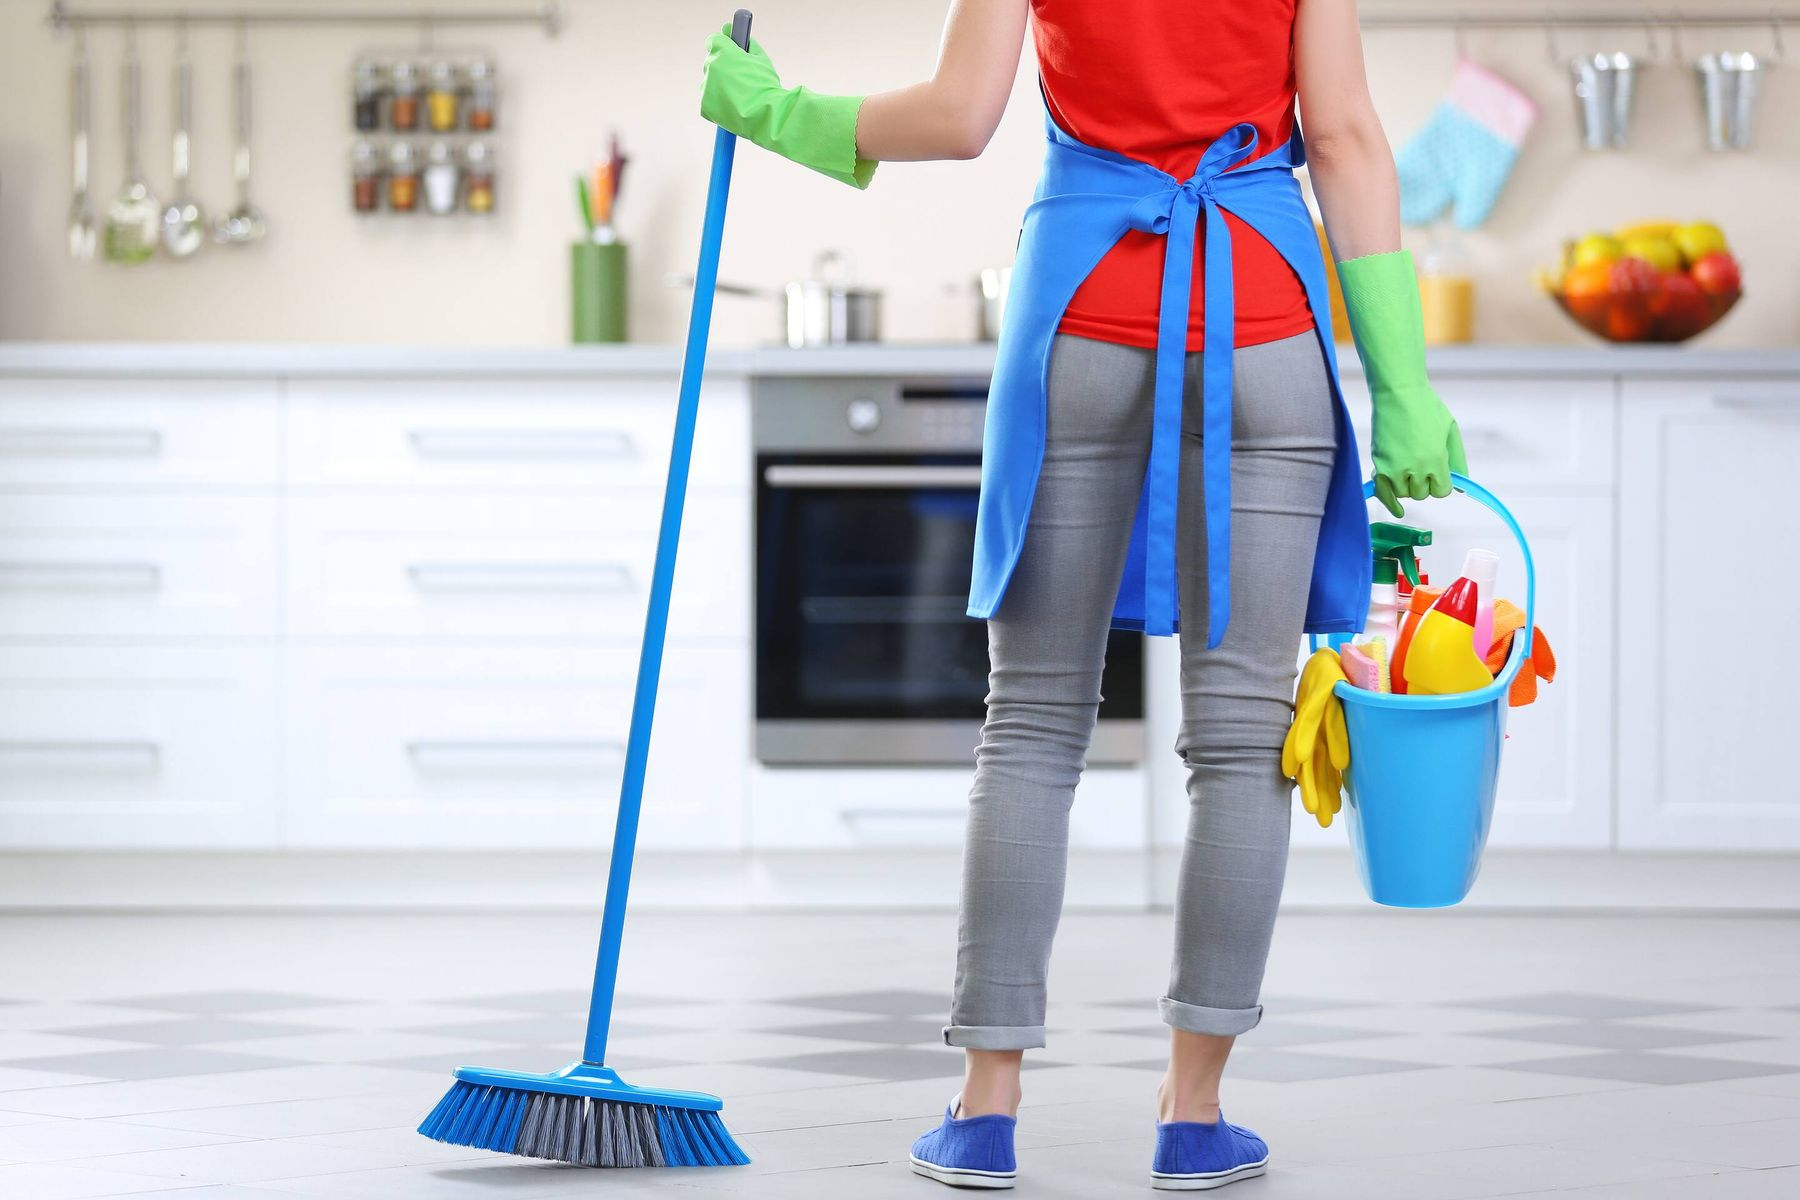 Did You Know Housework Can Be A Great Workout? Find Out More